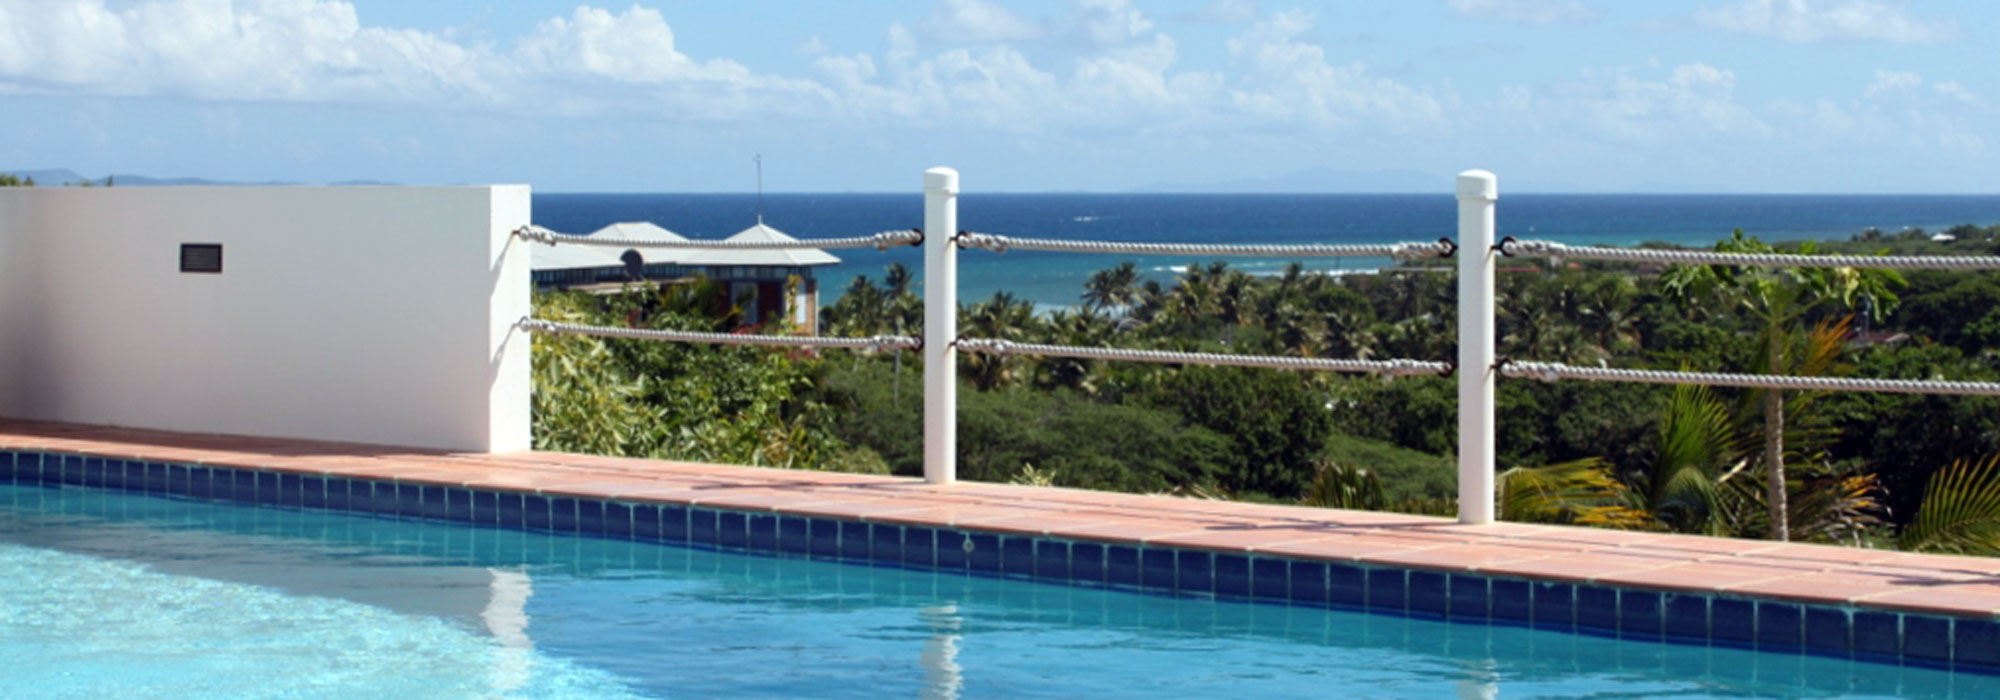 Villa Tres Arcos – BRAVOS BEACH/INCOME PRODUCER